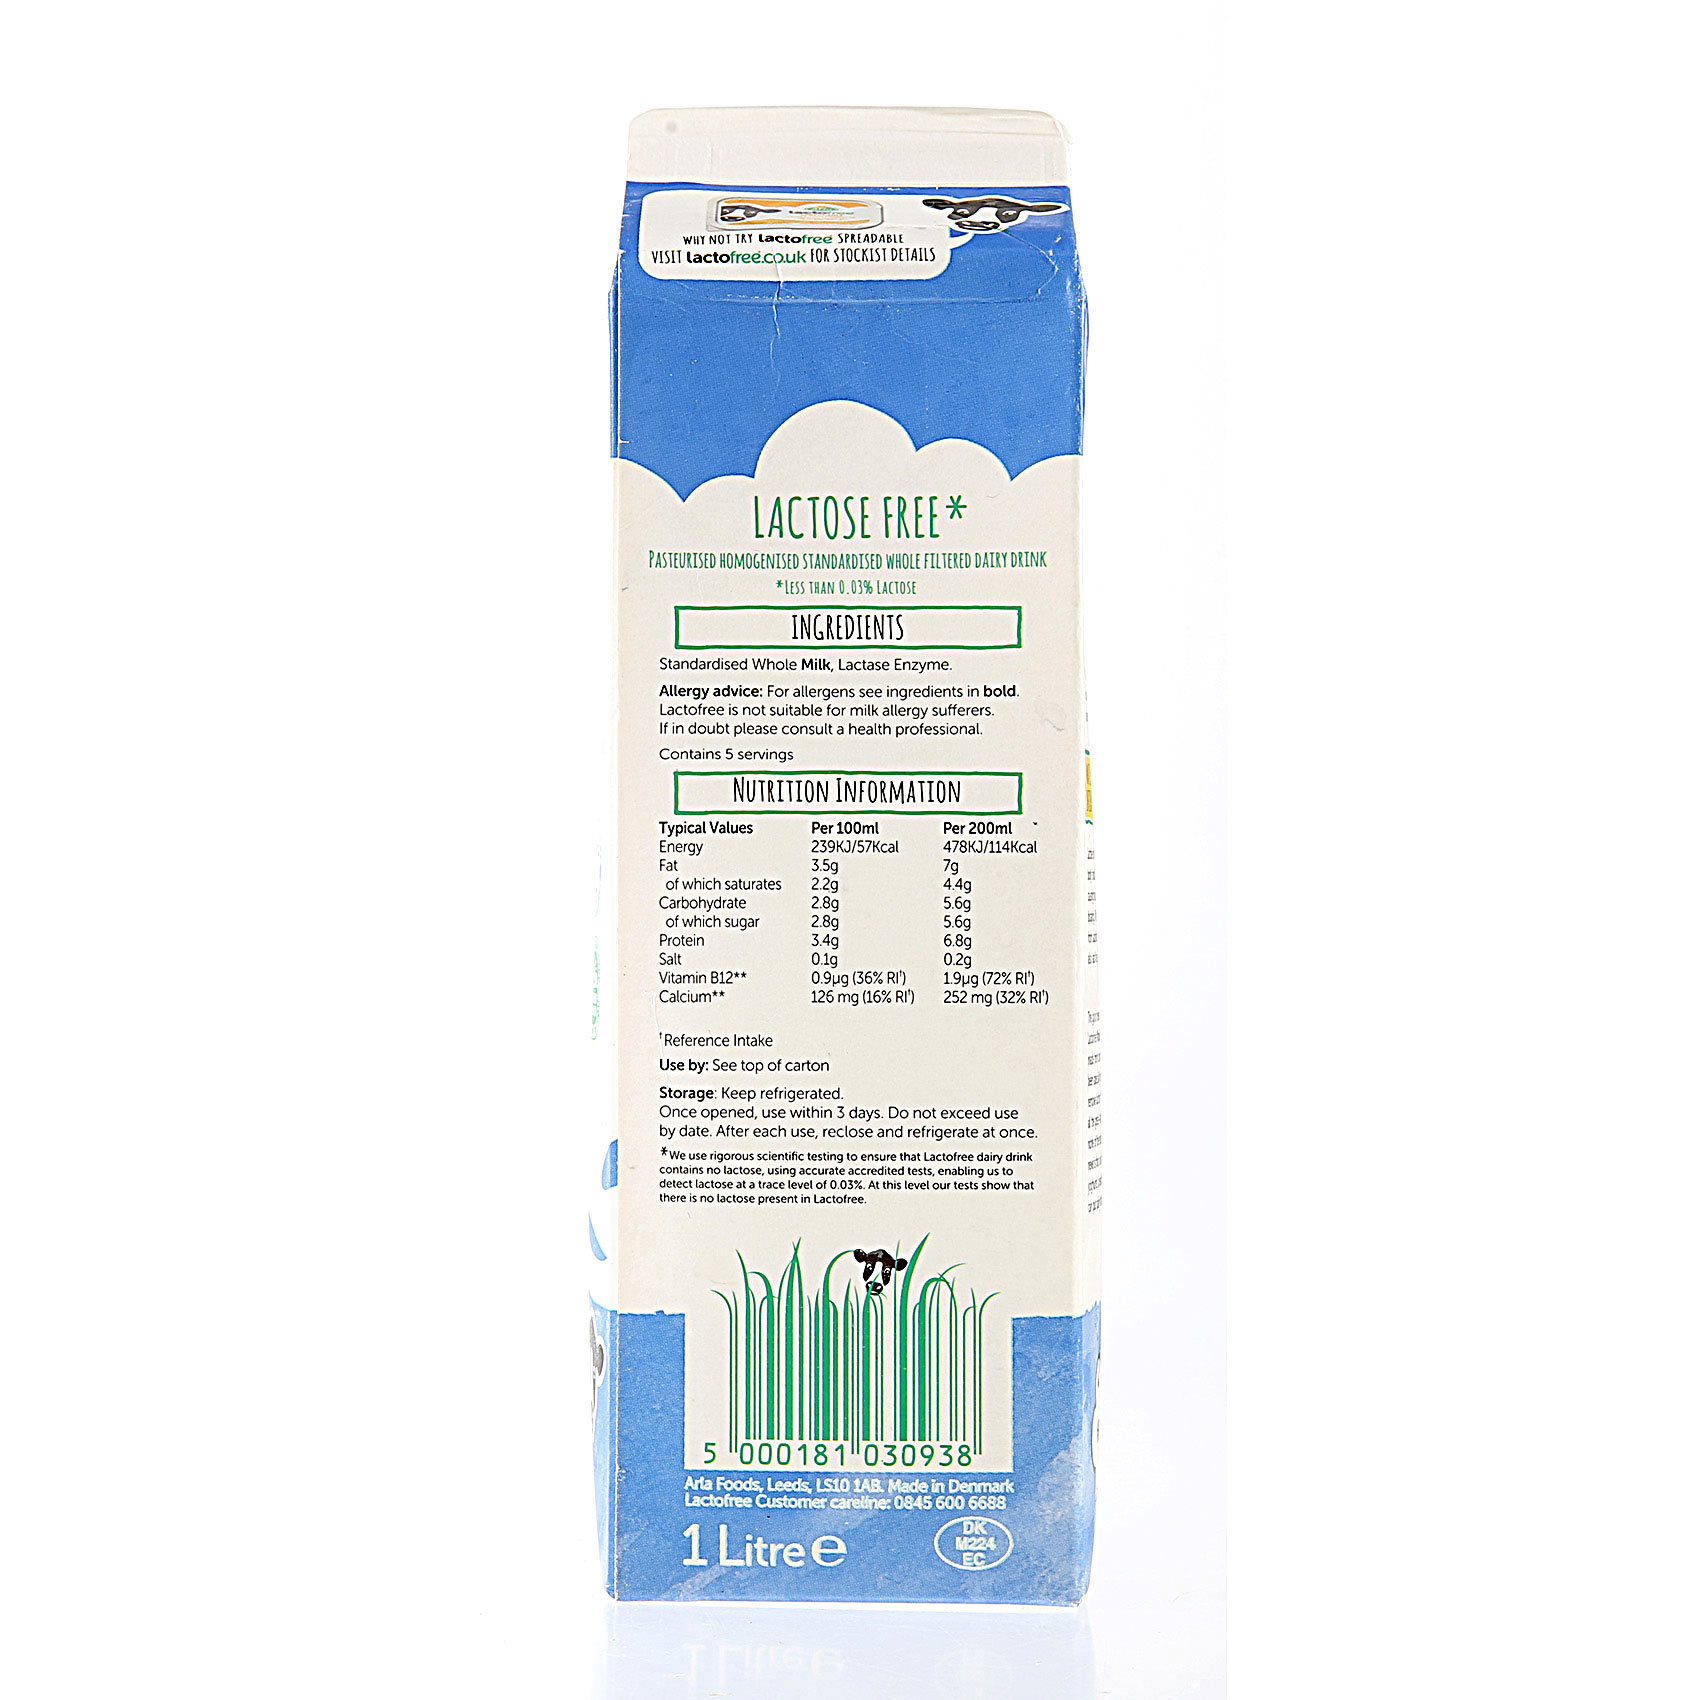 ARLA LACTOFREE WHOLE FRSH MILK 1L